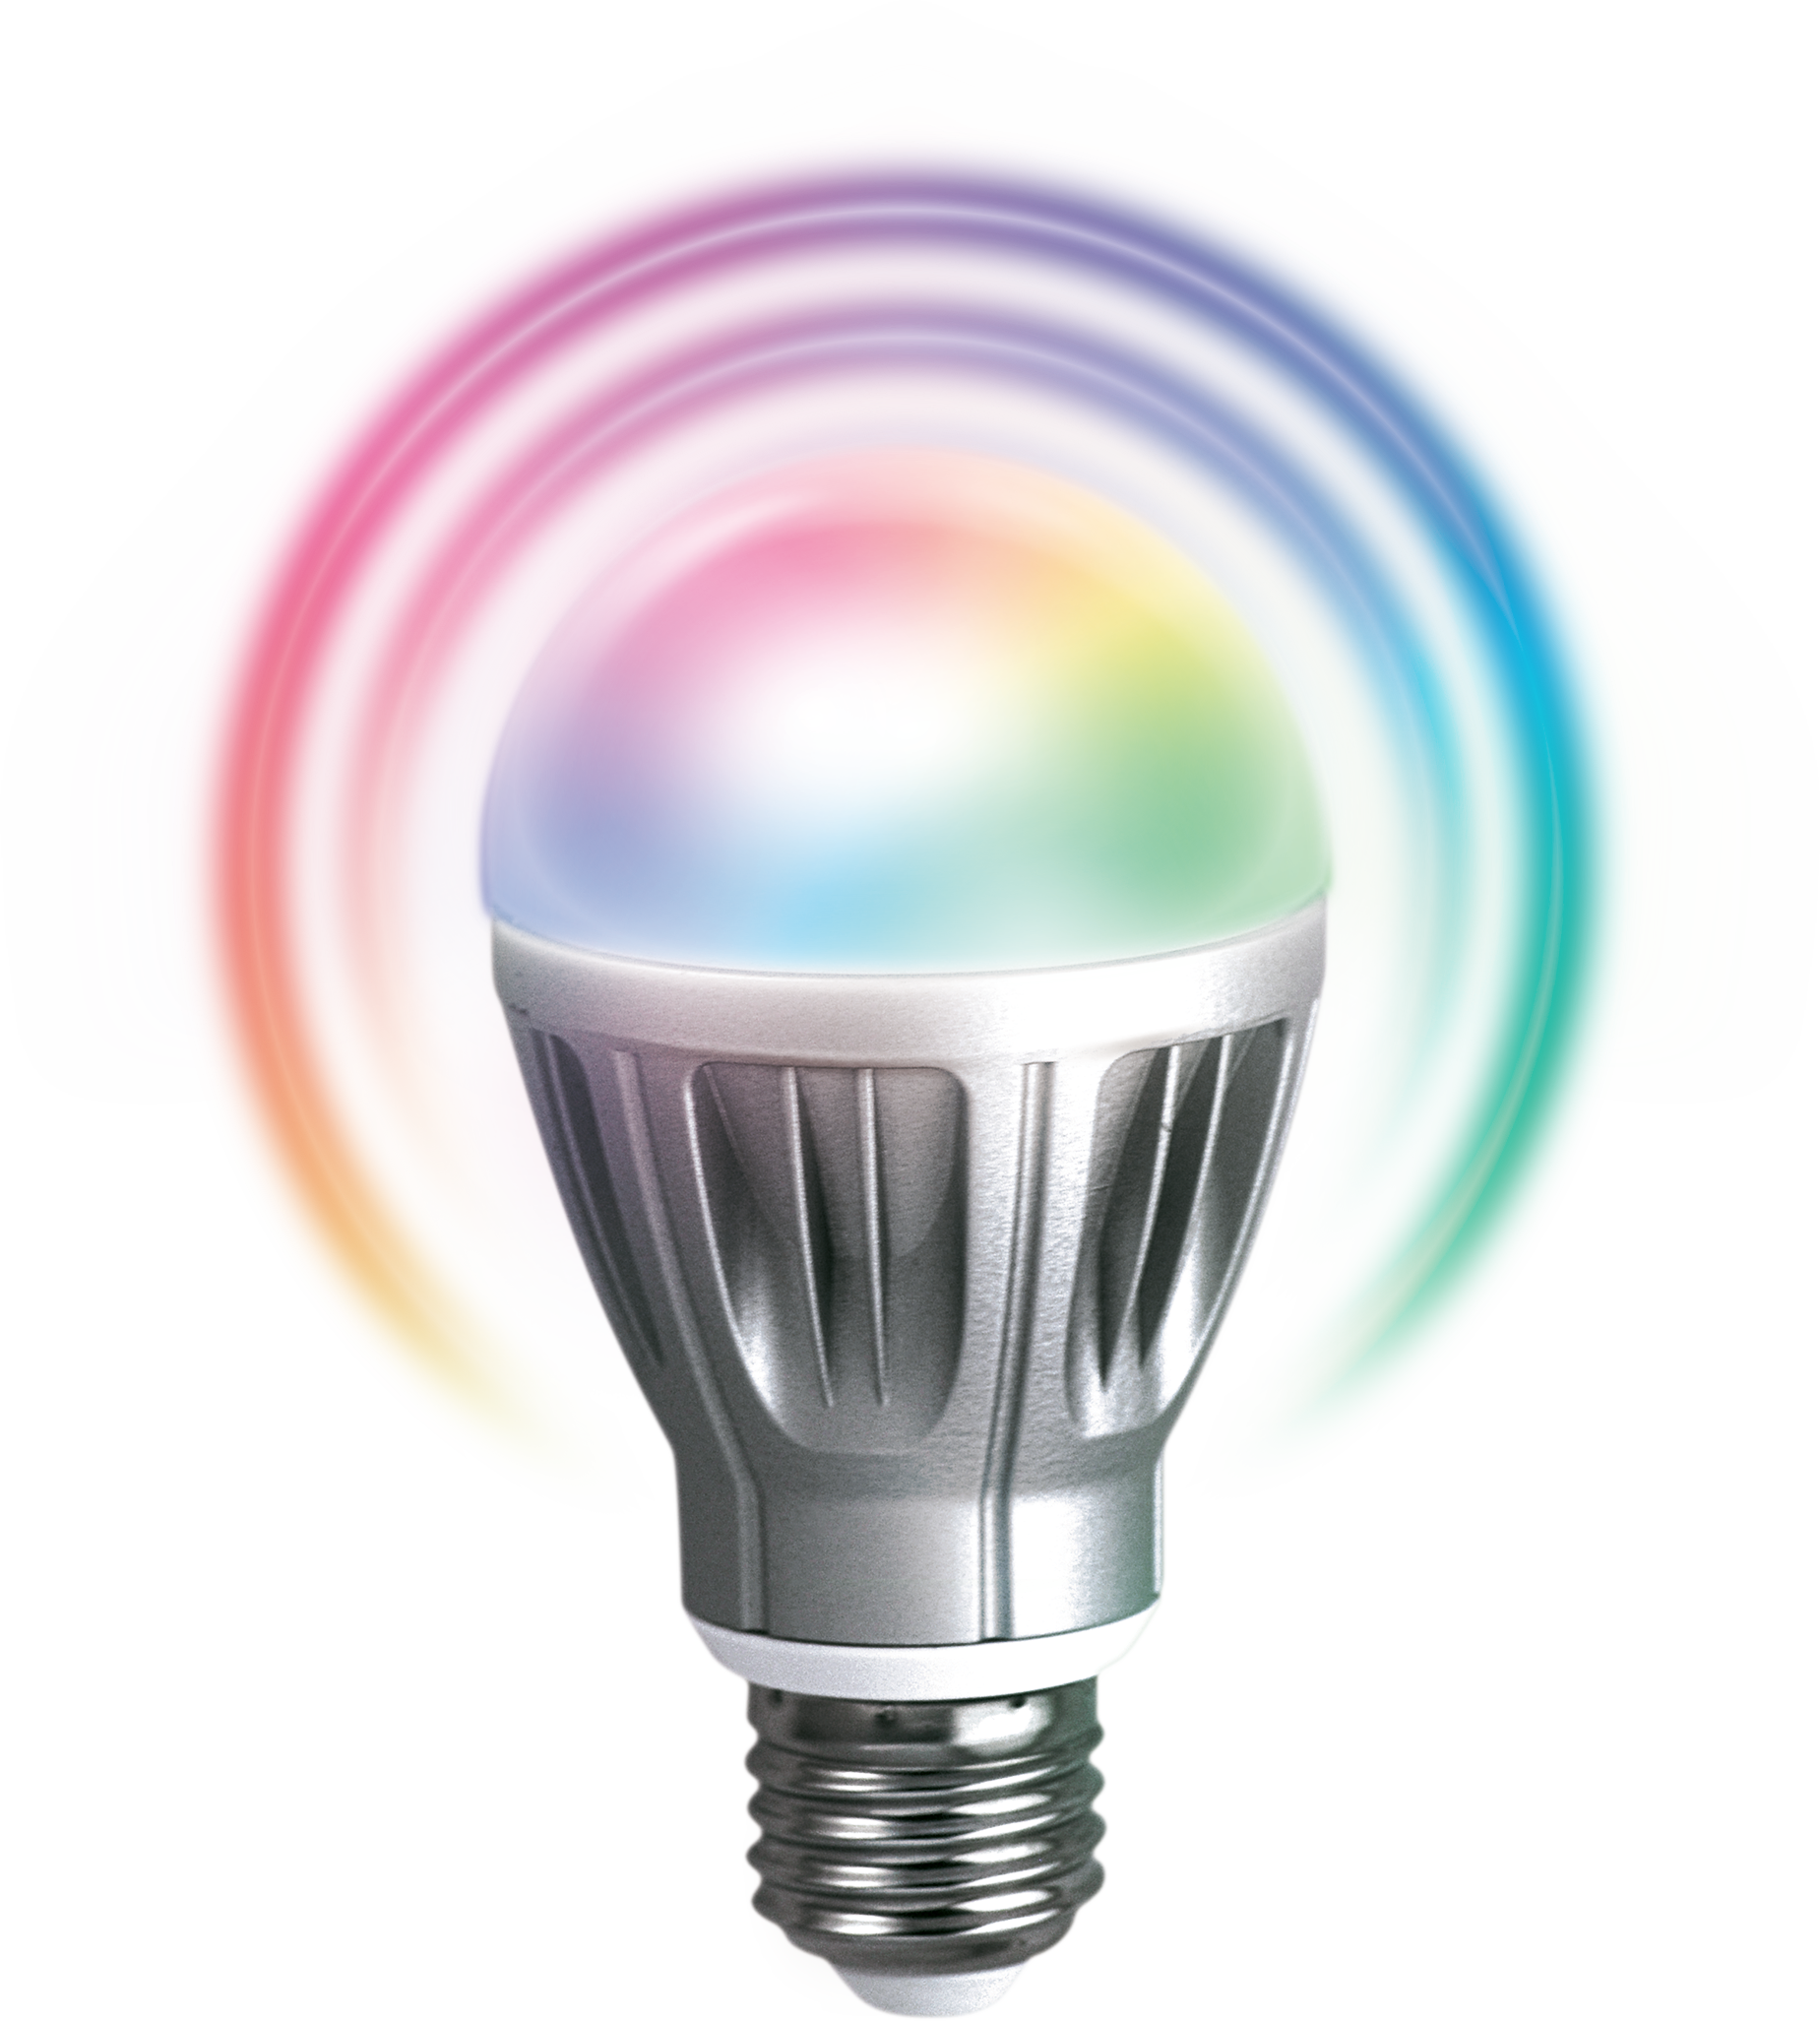 Zipato rgbw led z wave 6 7 watt bulb with 5 color channels compatible with most z wave home Led bulbs